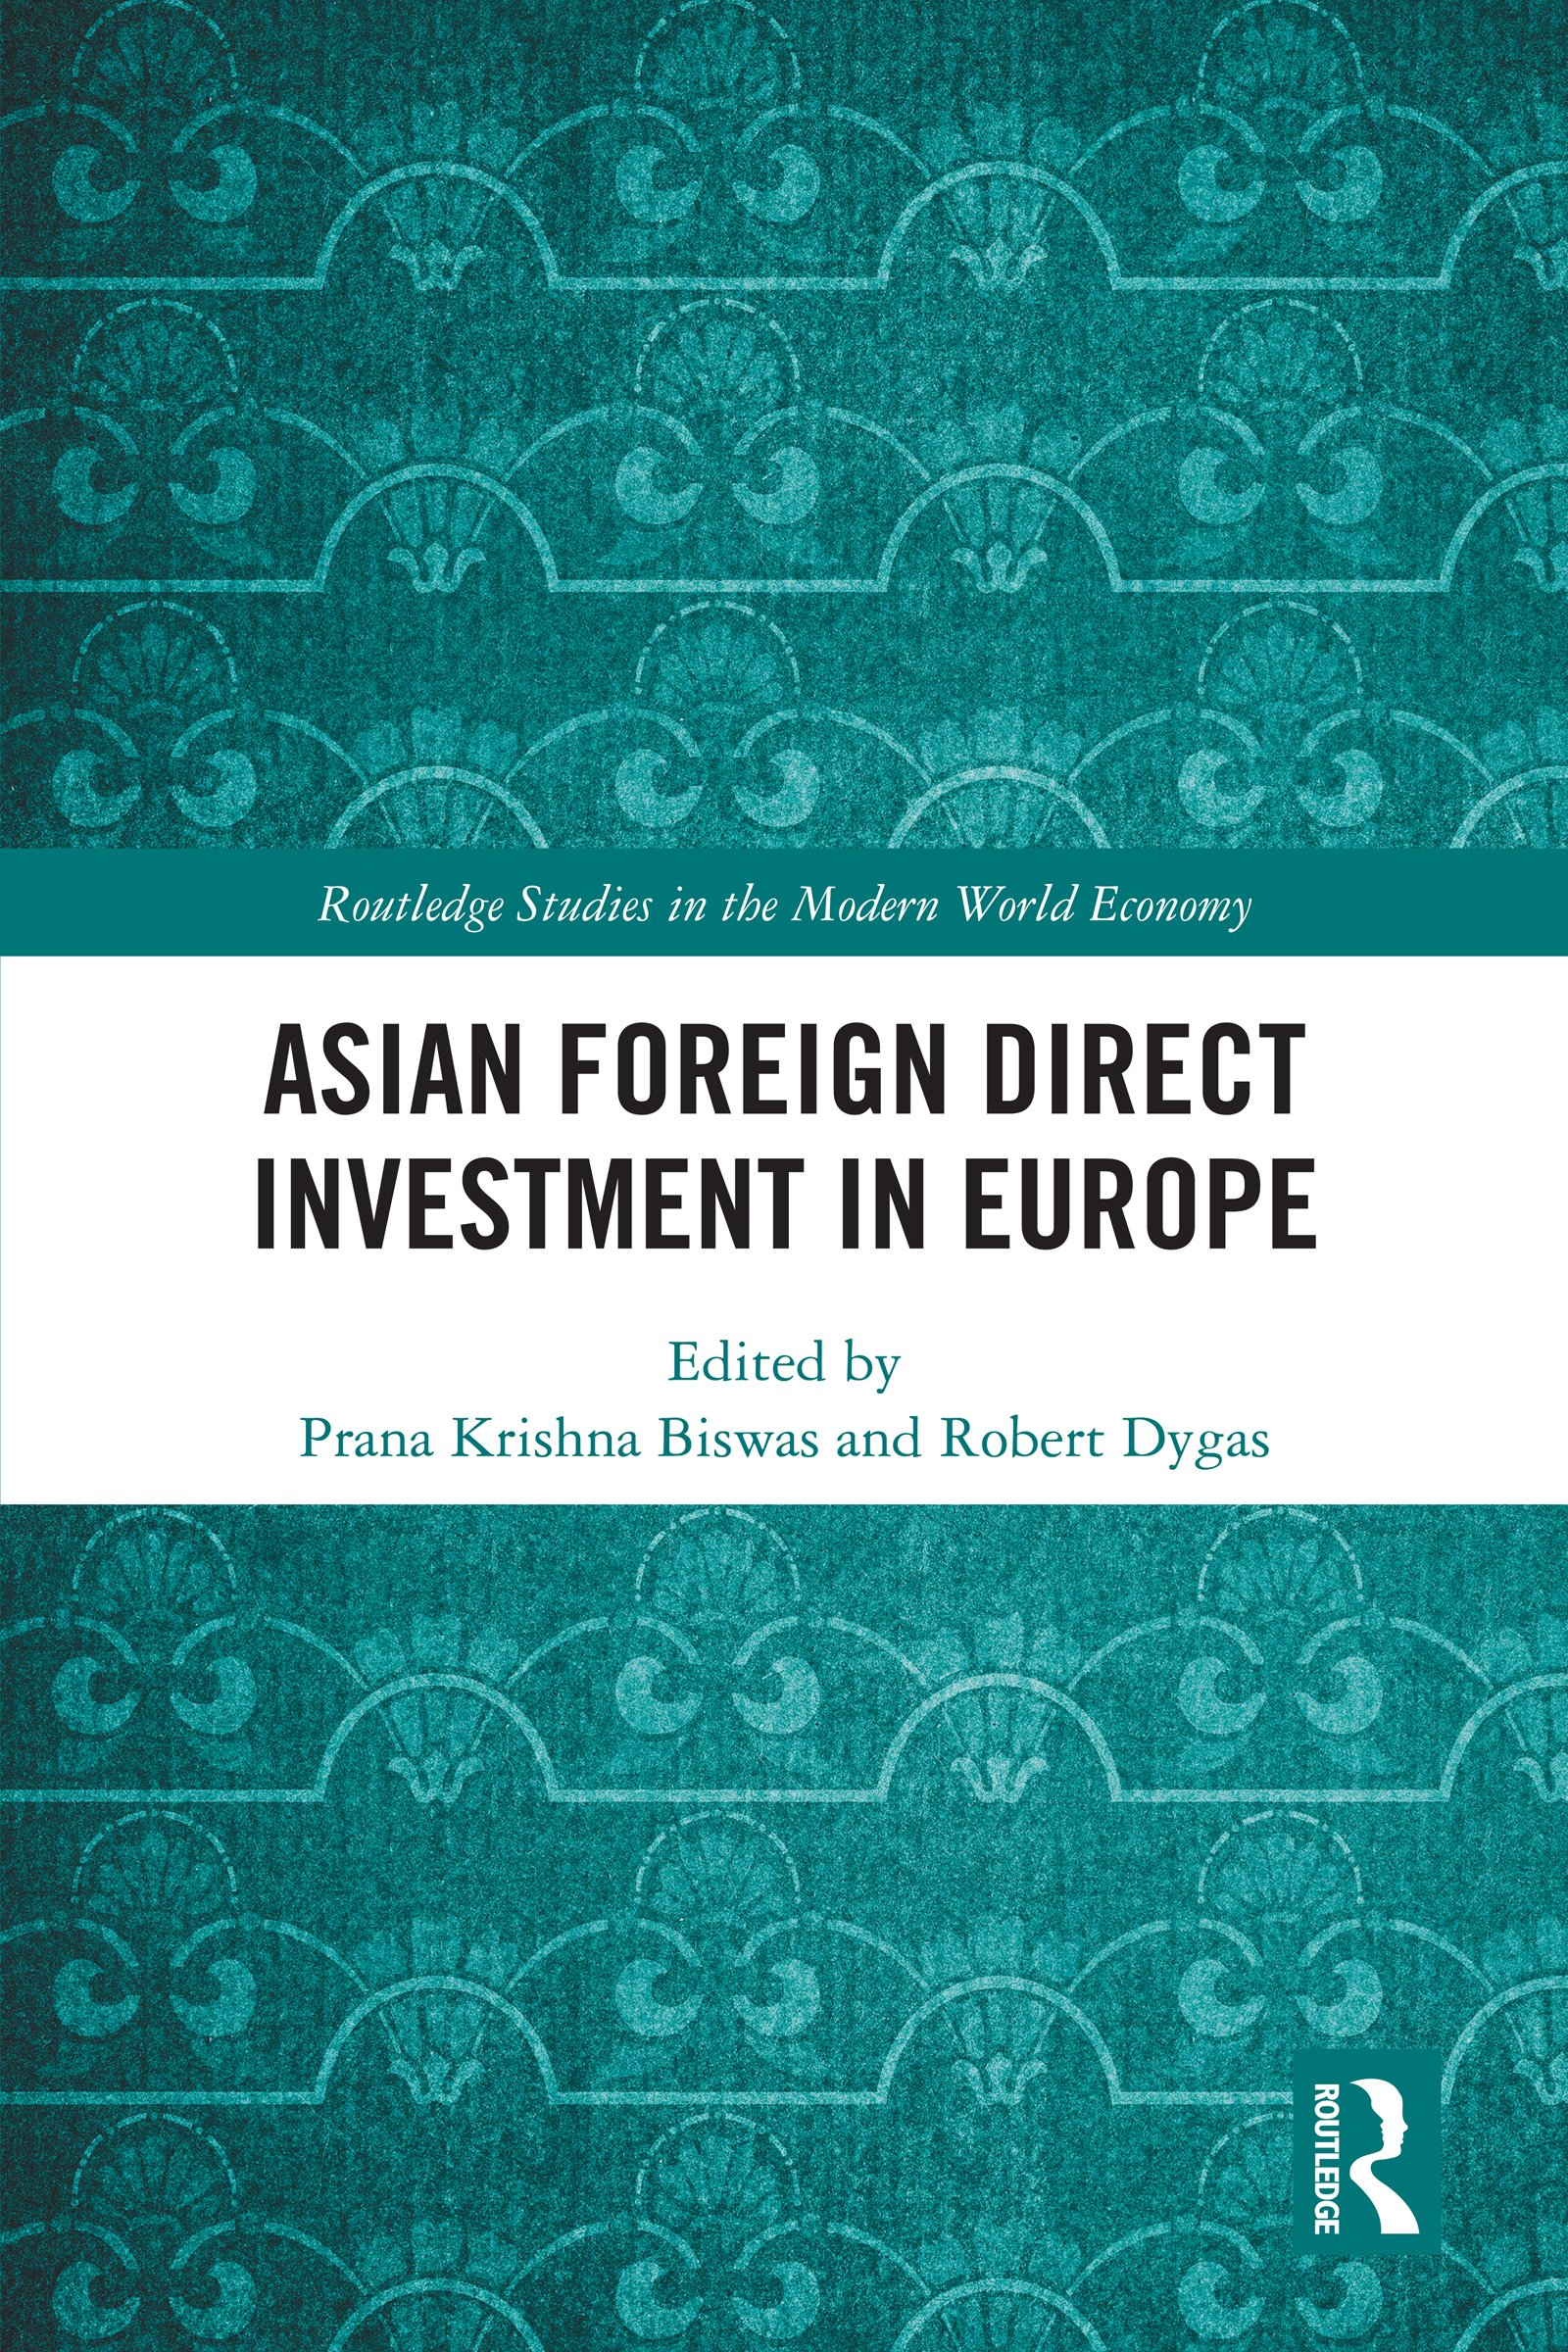 The effect of capital flows on Asian/Euro exchange market pressure